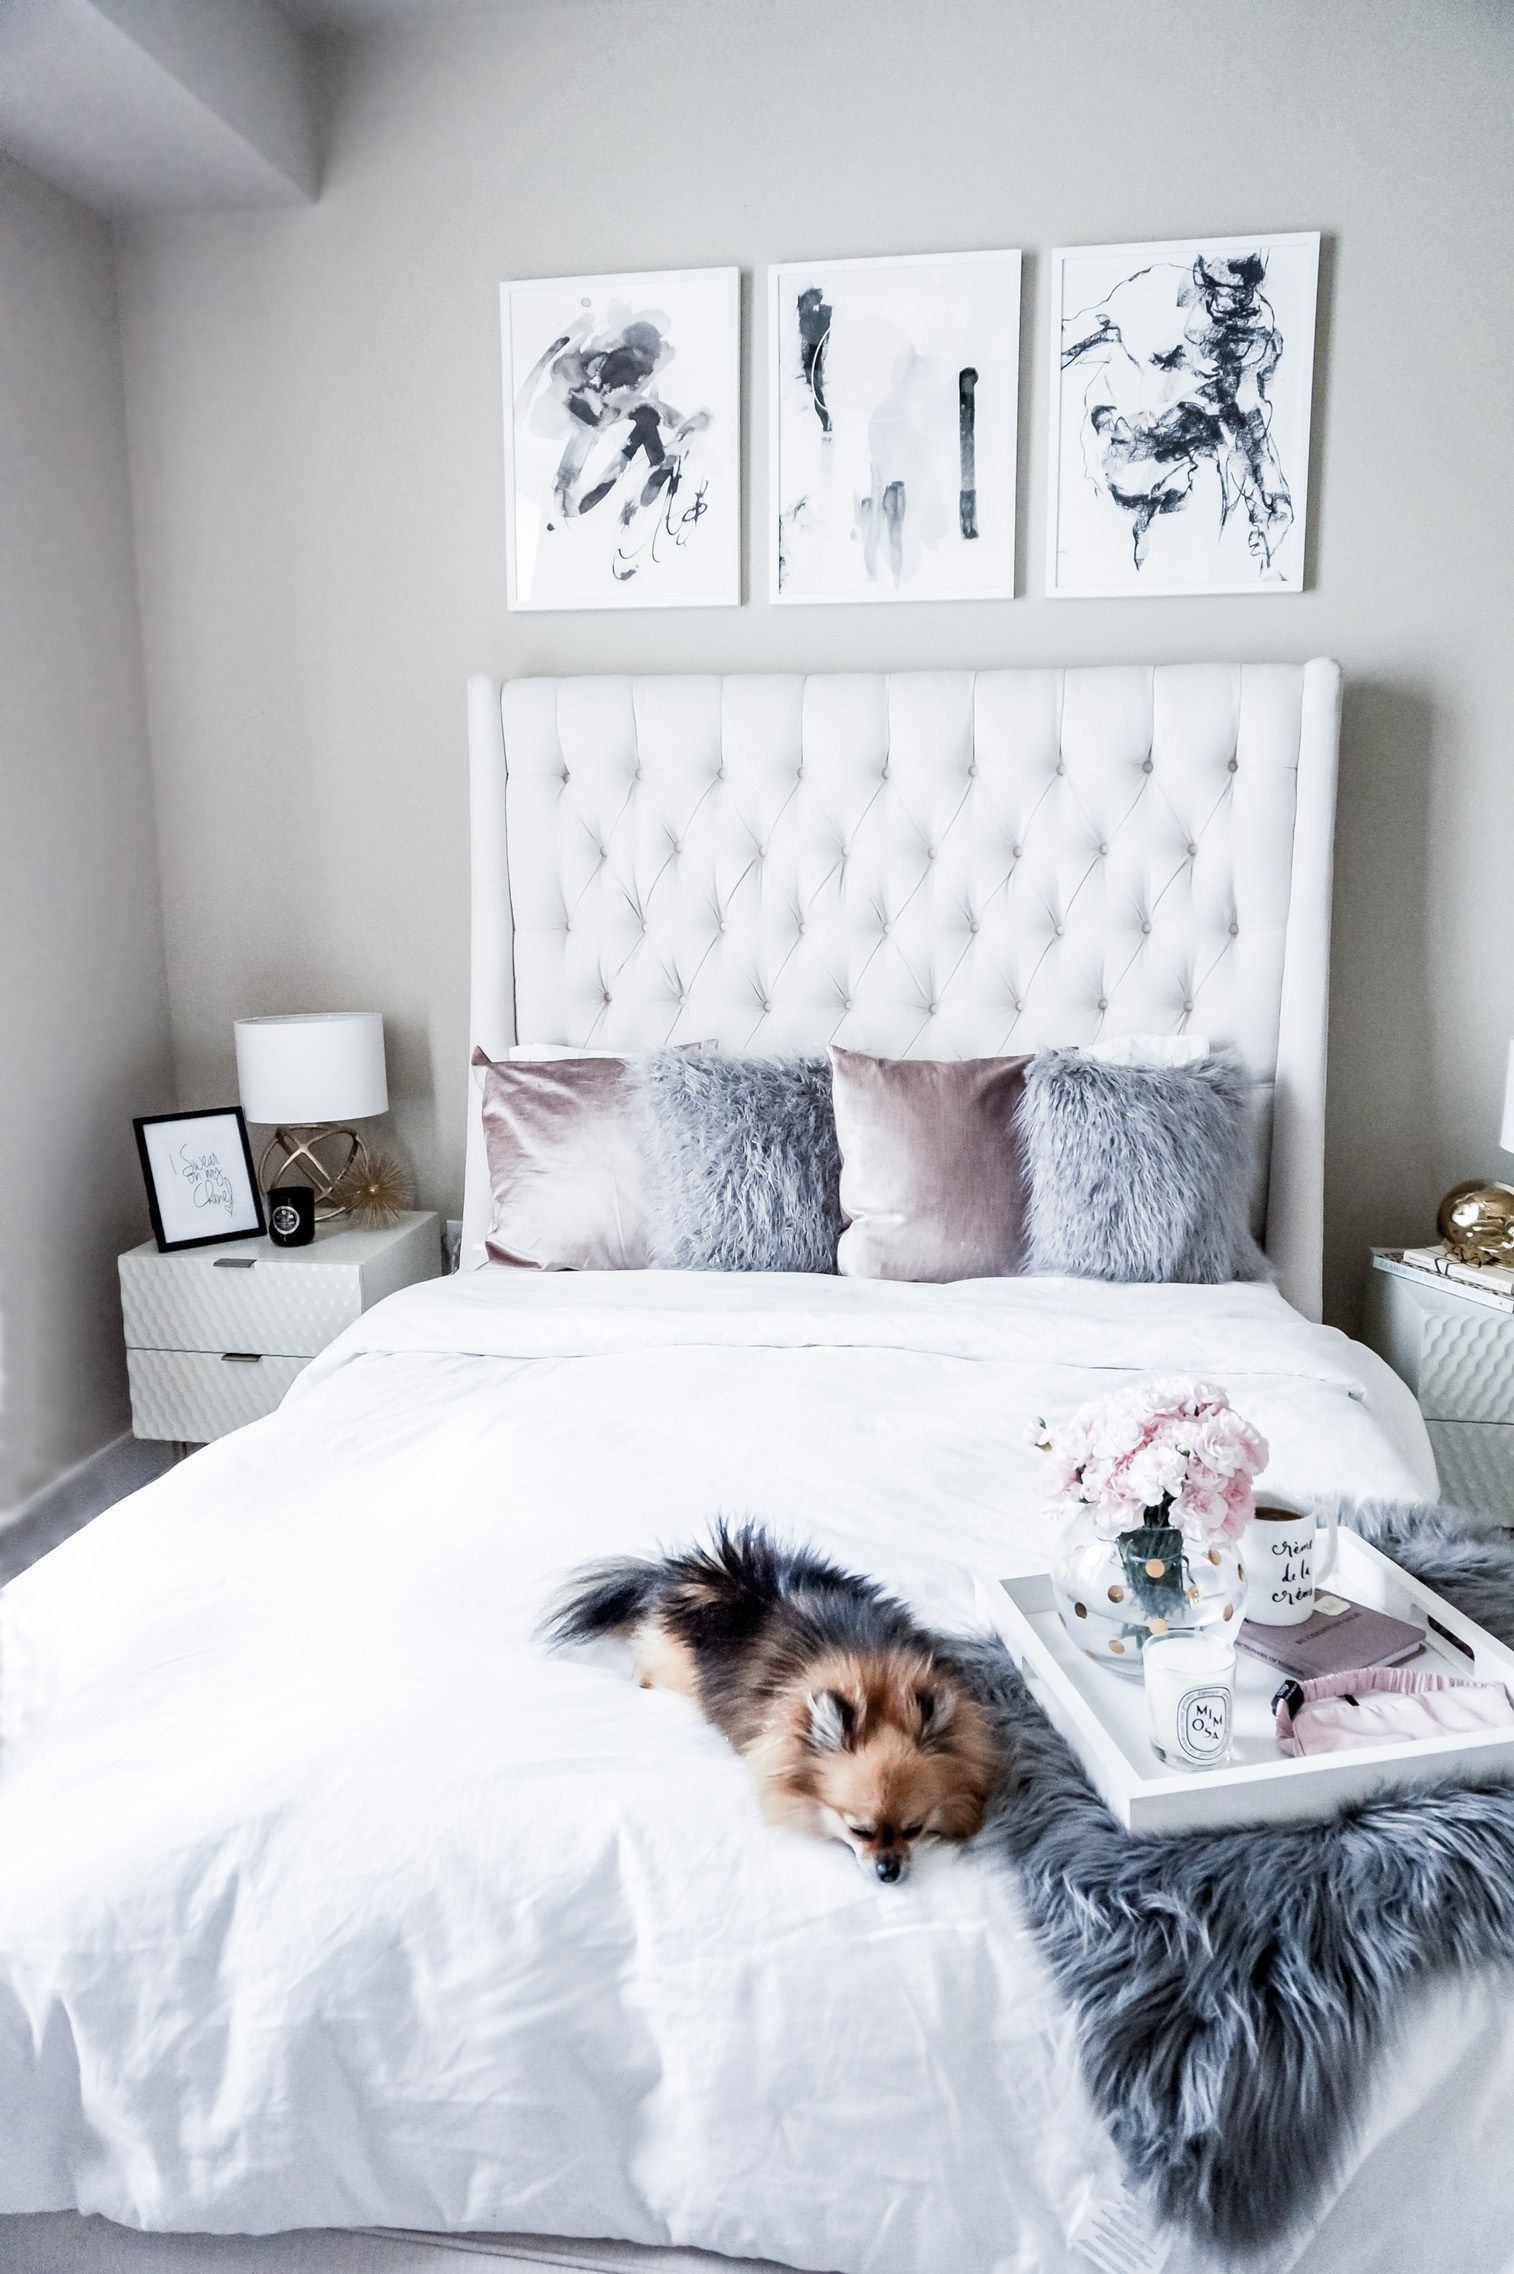 Charmant Tiffany Jais Houston Fashion And Lifestyle Blogger Sharing Her Updated  Scandinavian Bedroom Interior With Minted, Click To Read More | Minted Art  Prints, ...